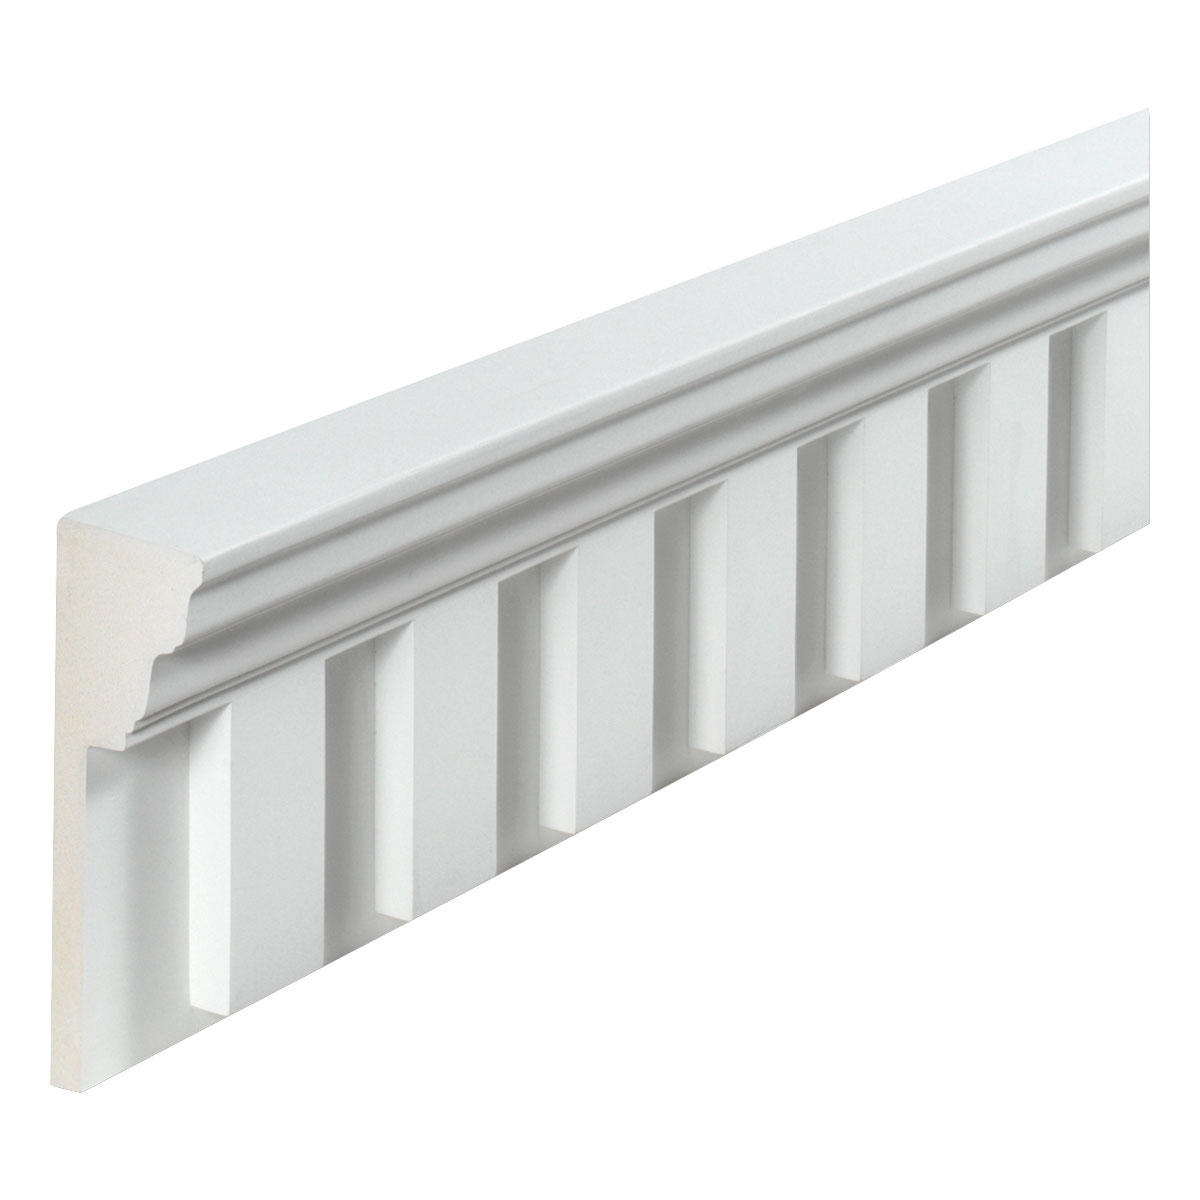 Fypon ltd mld336 16 9 3 8 inch w x 2 1 2 inch t 2 1 2 inch for Fypon dentil molding